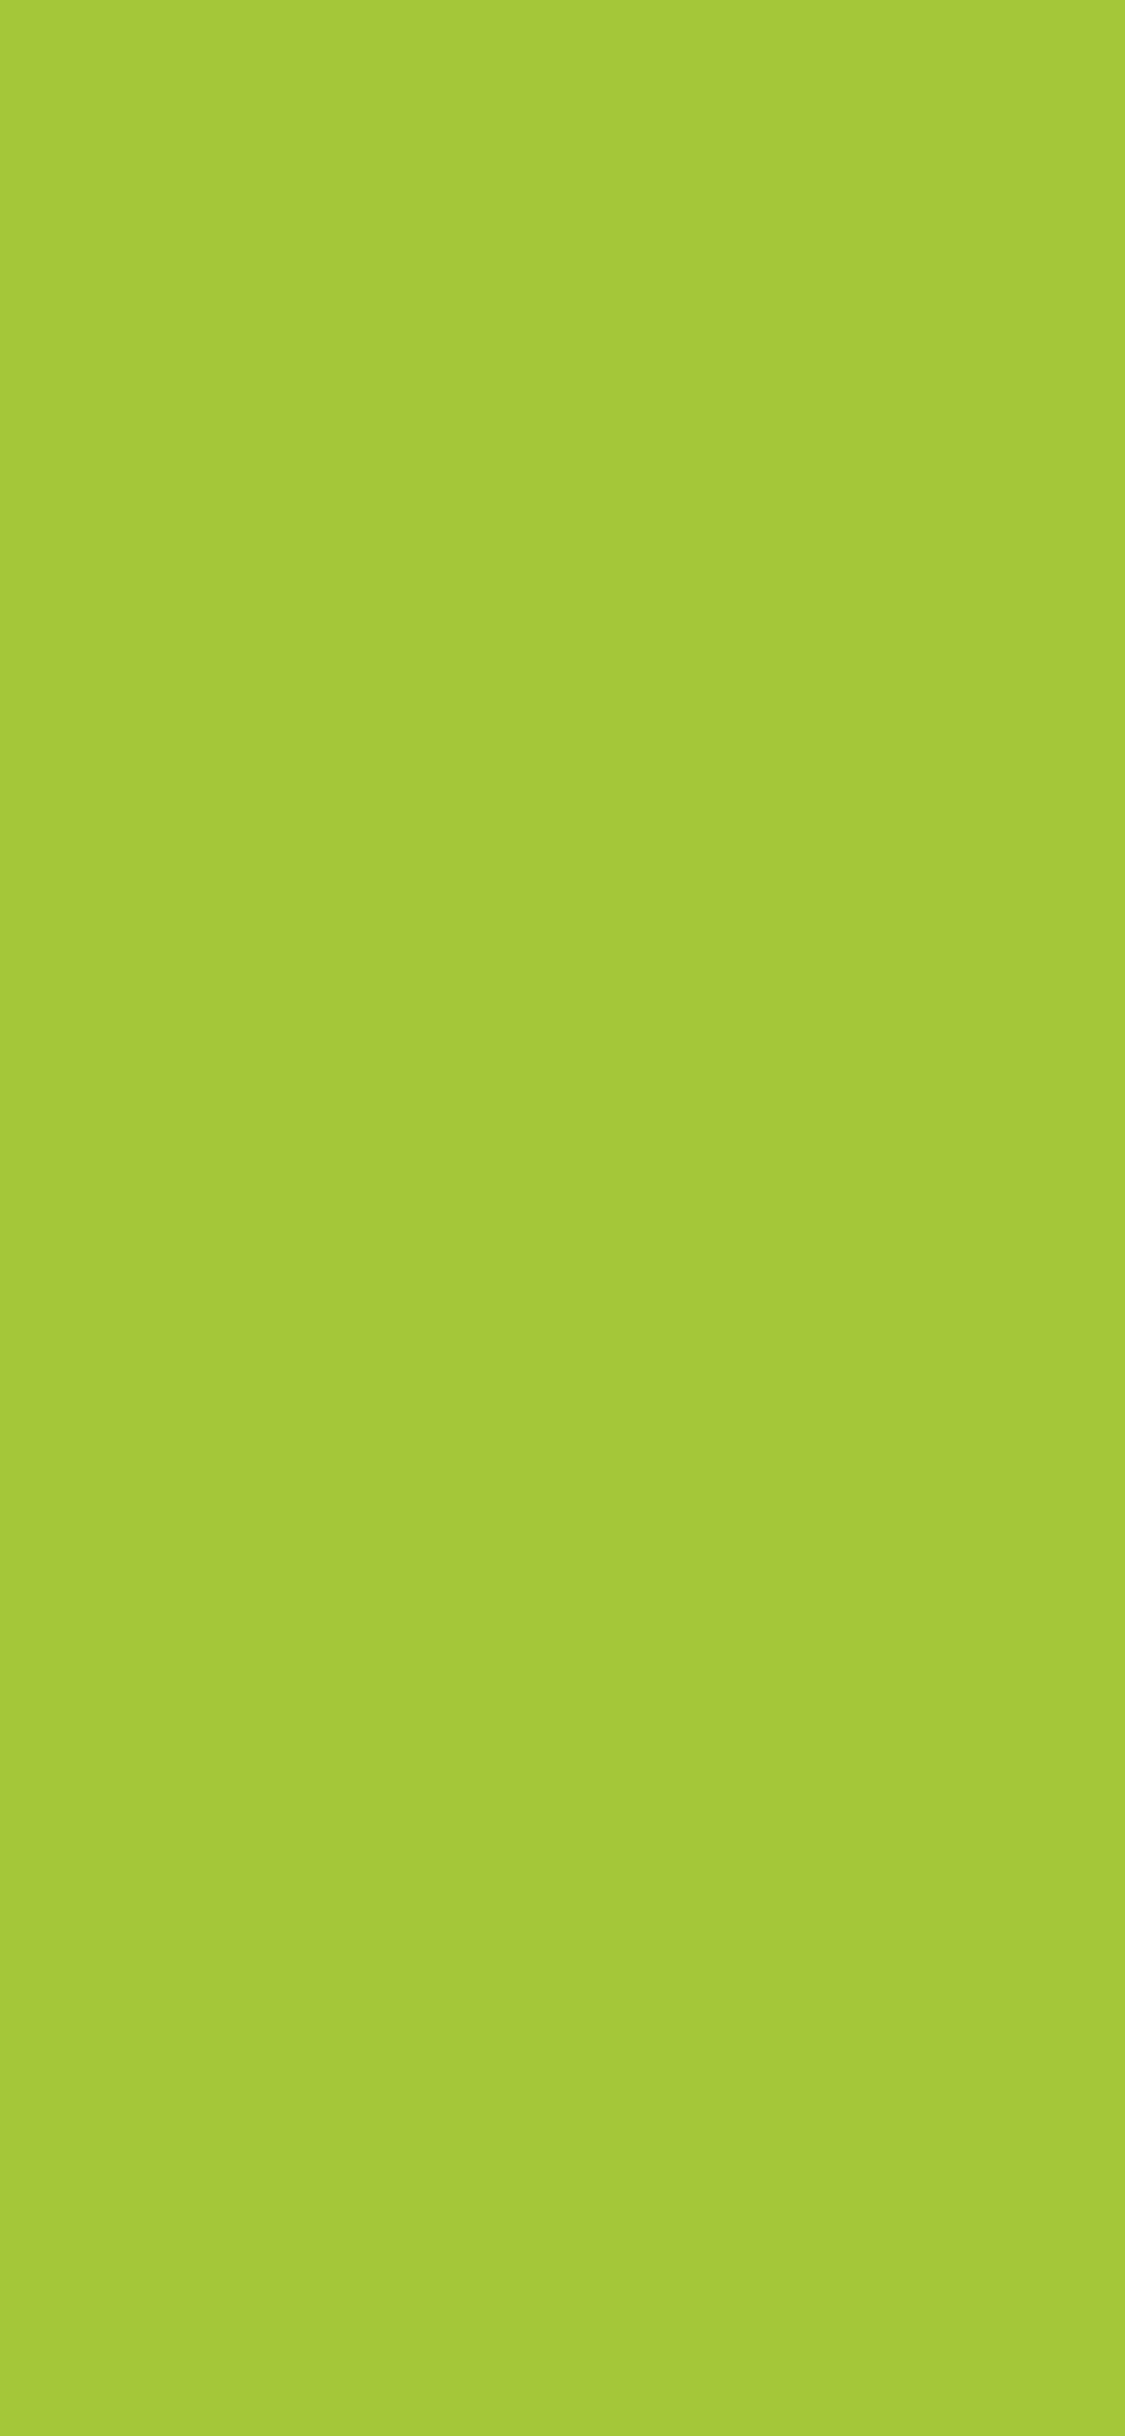 1125x2436 Android Green Solid Color Background